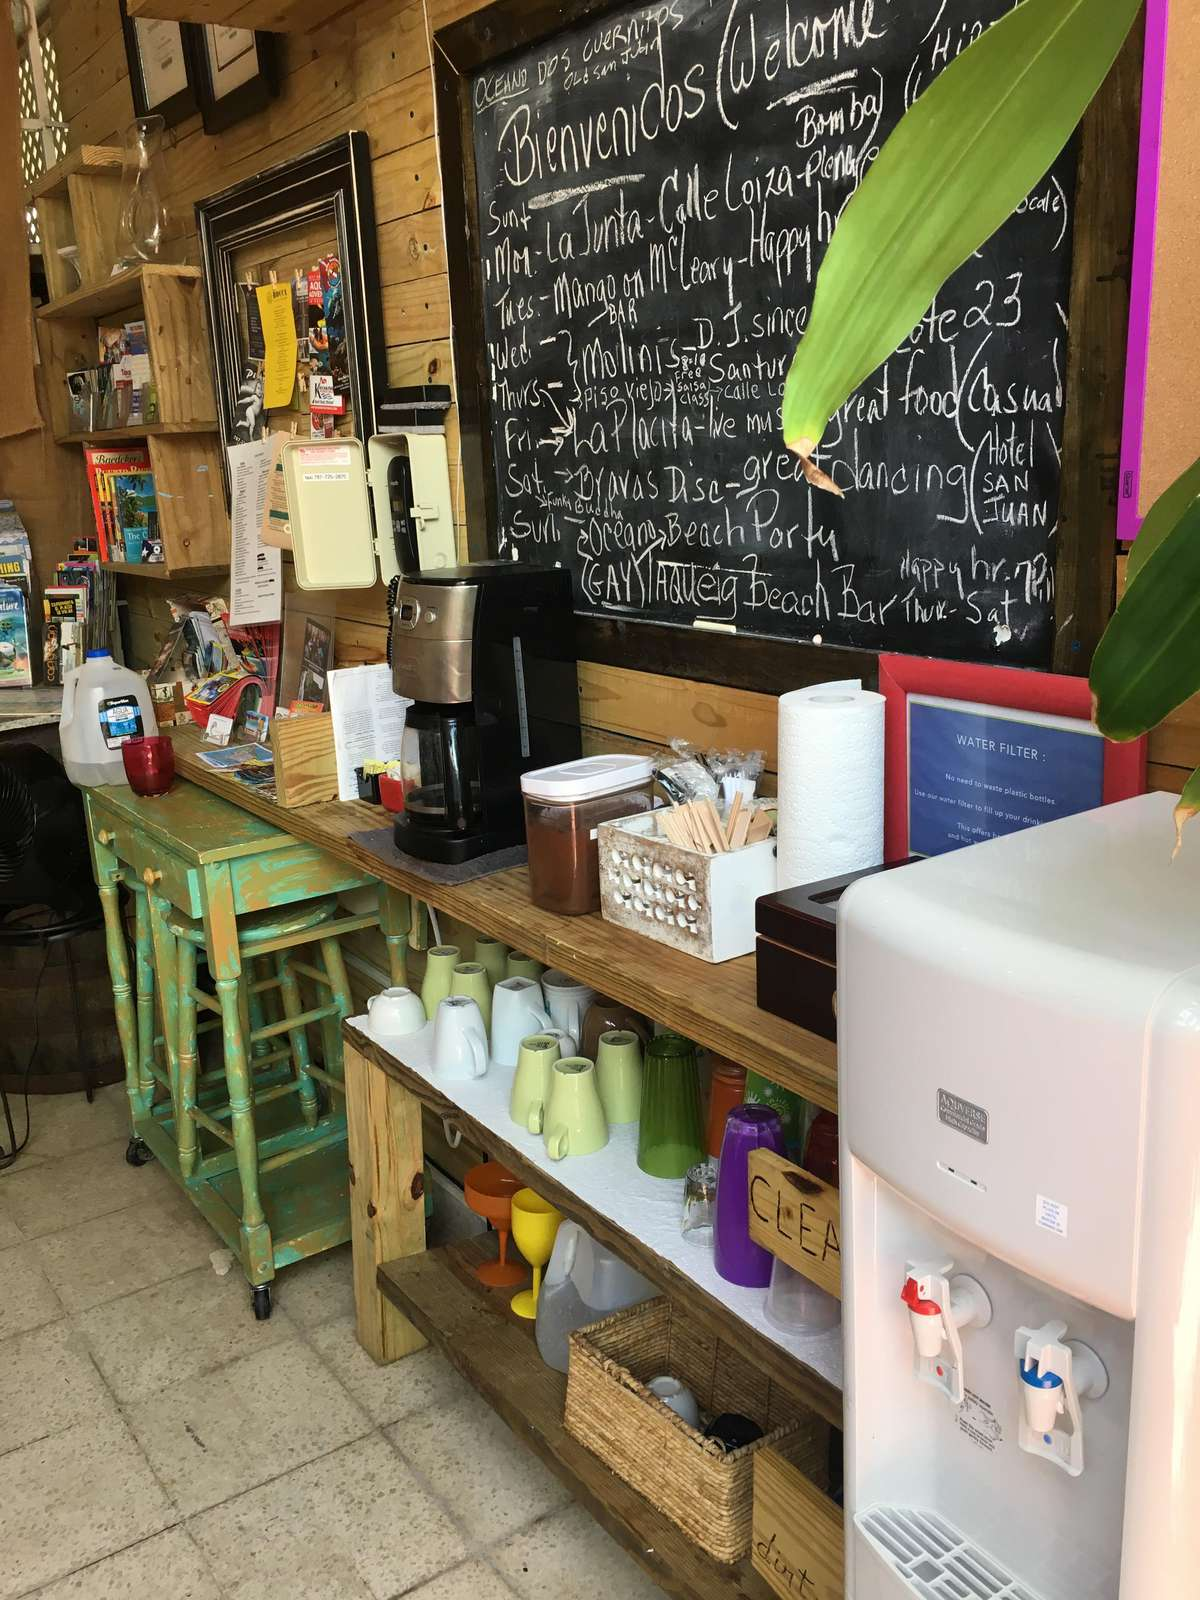 Filtered water and daily coffee